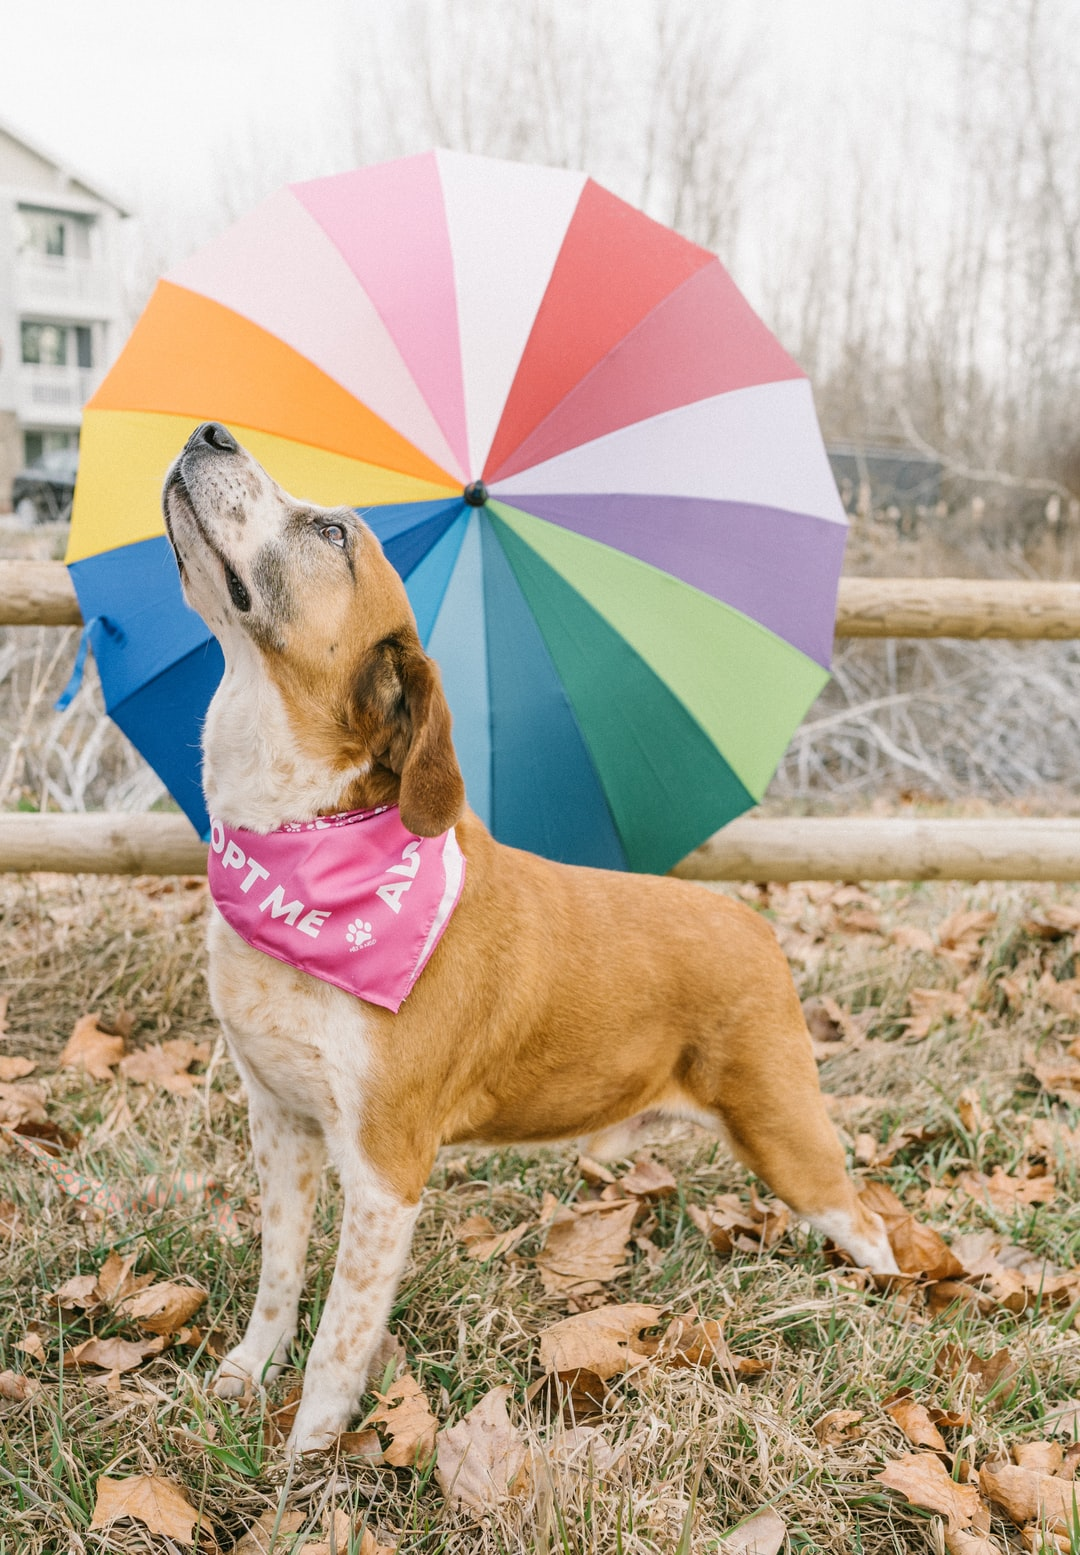 Rescue dog up for adoption, outdoors in front of rainbow umbrella